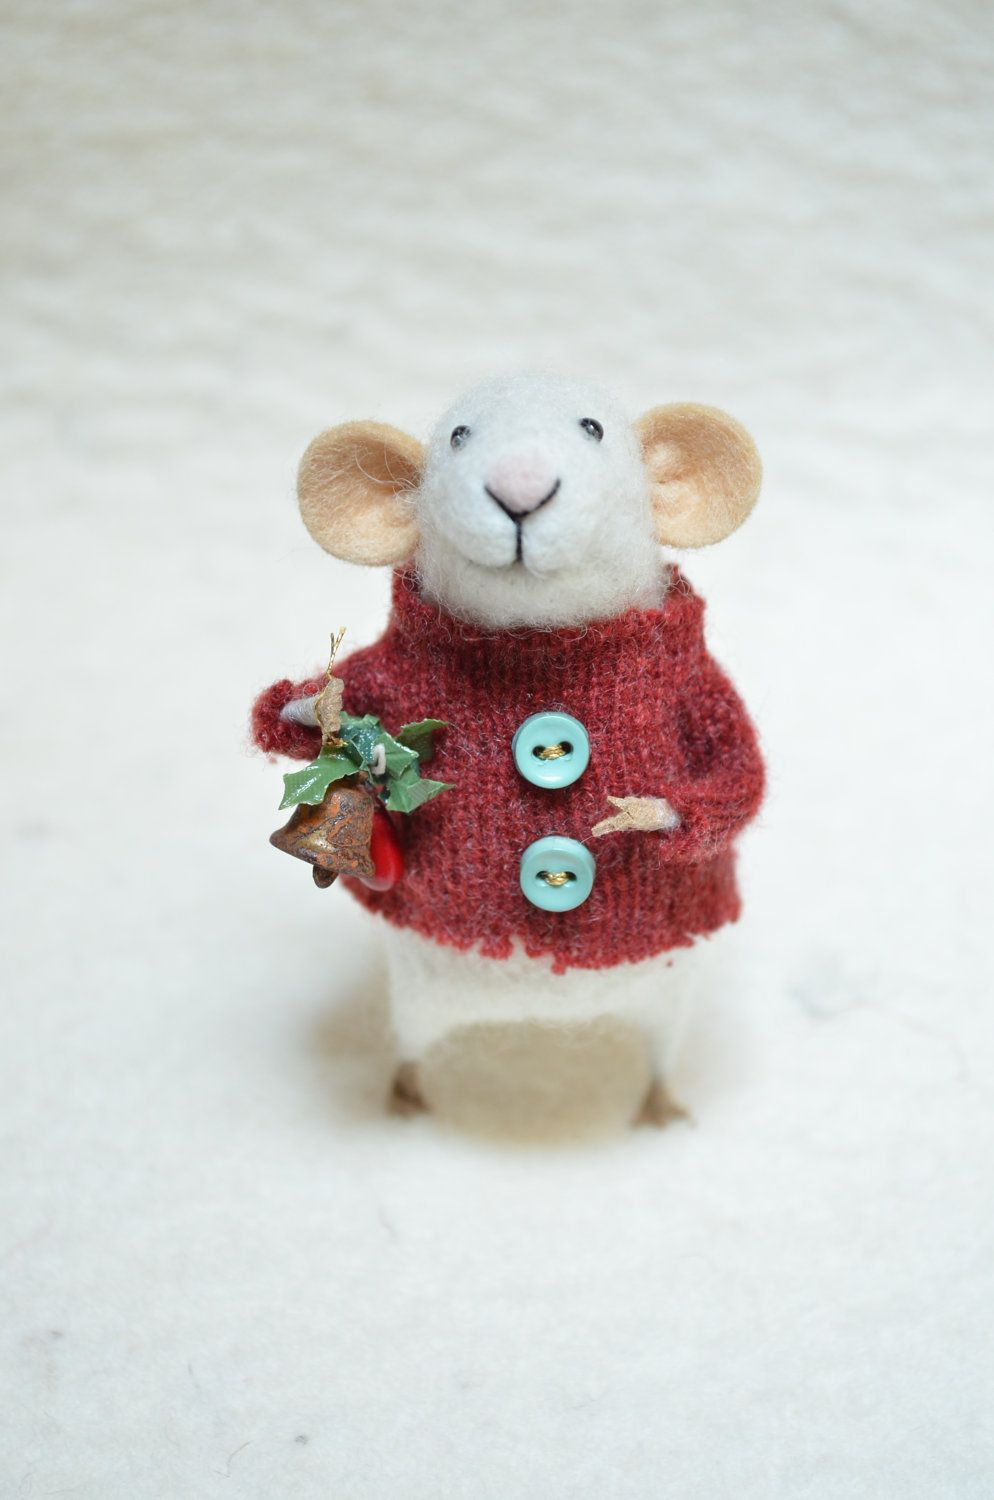 I Am Inexplicably In Total Love Christmas Mouse Unique Needle Felted Ornament Animal Felting Felt Ornaments Christmas Mouse Needle Felted Ornaments